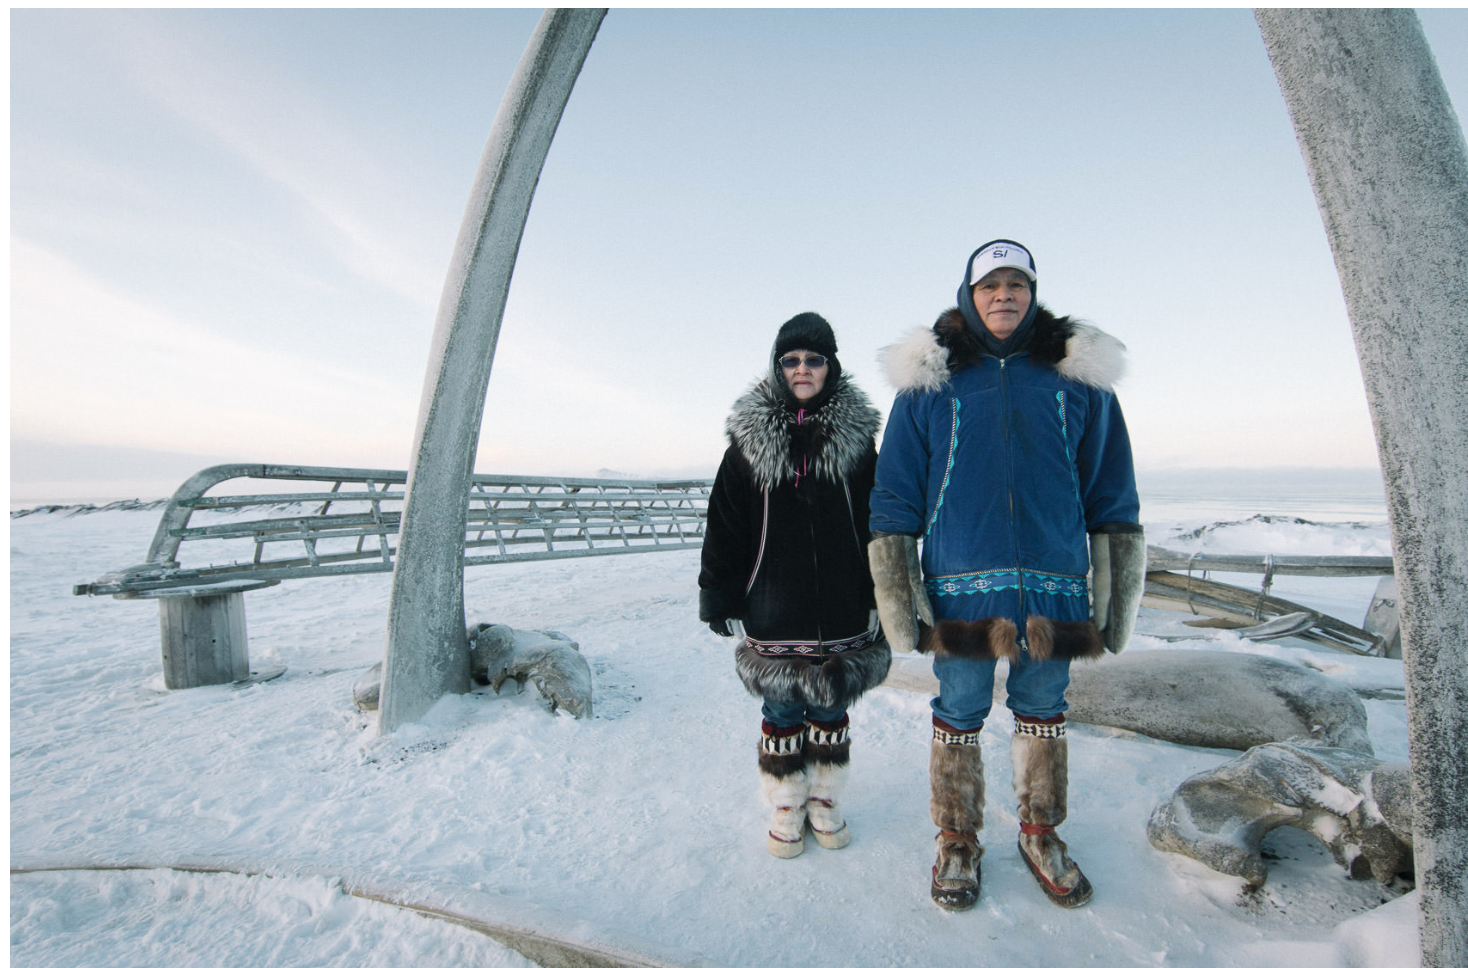 On the left Nora Adams. On the right Sheldon Adams, captain of the Iñupiaq whaling crew. All images throughout courtesy of Kiliii Yüyan ©